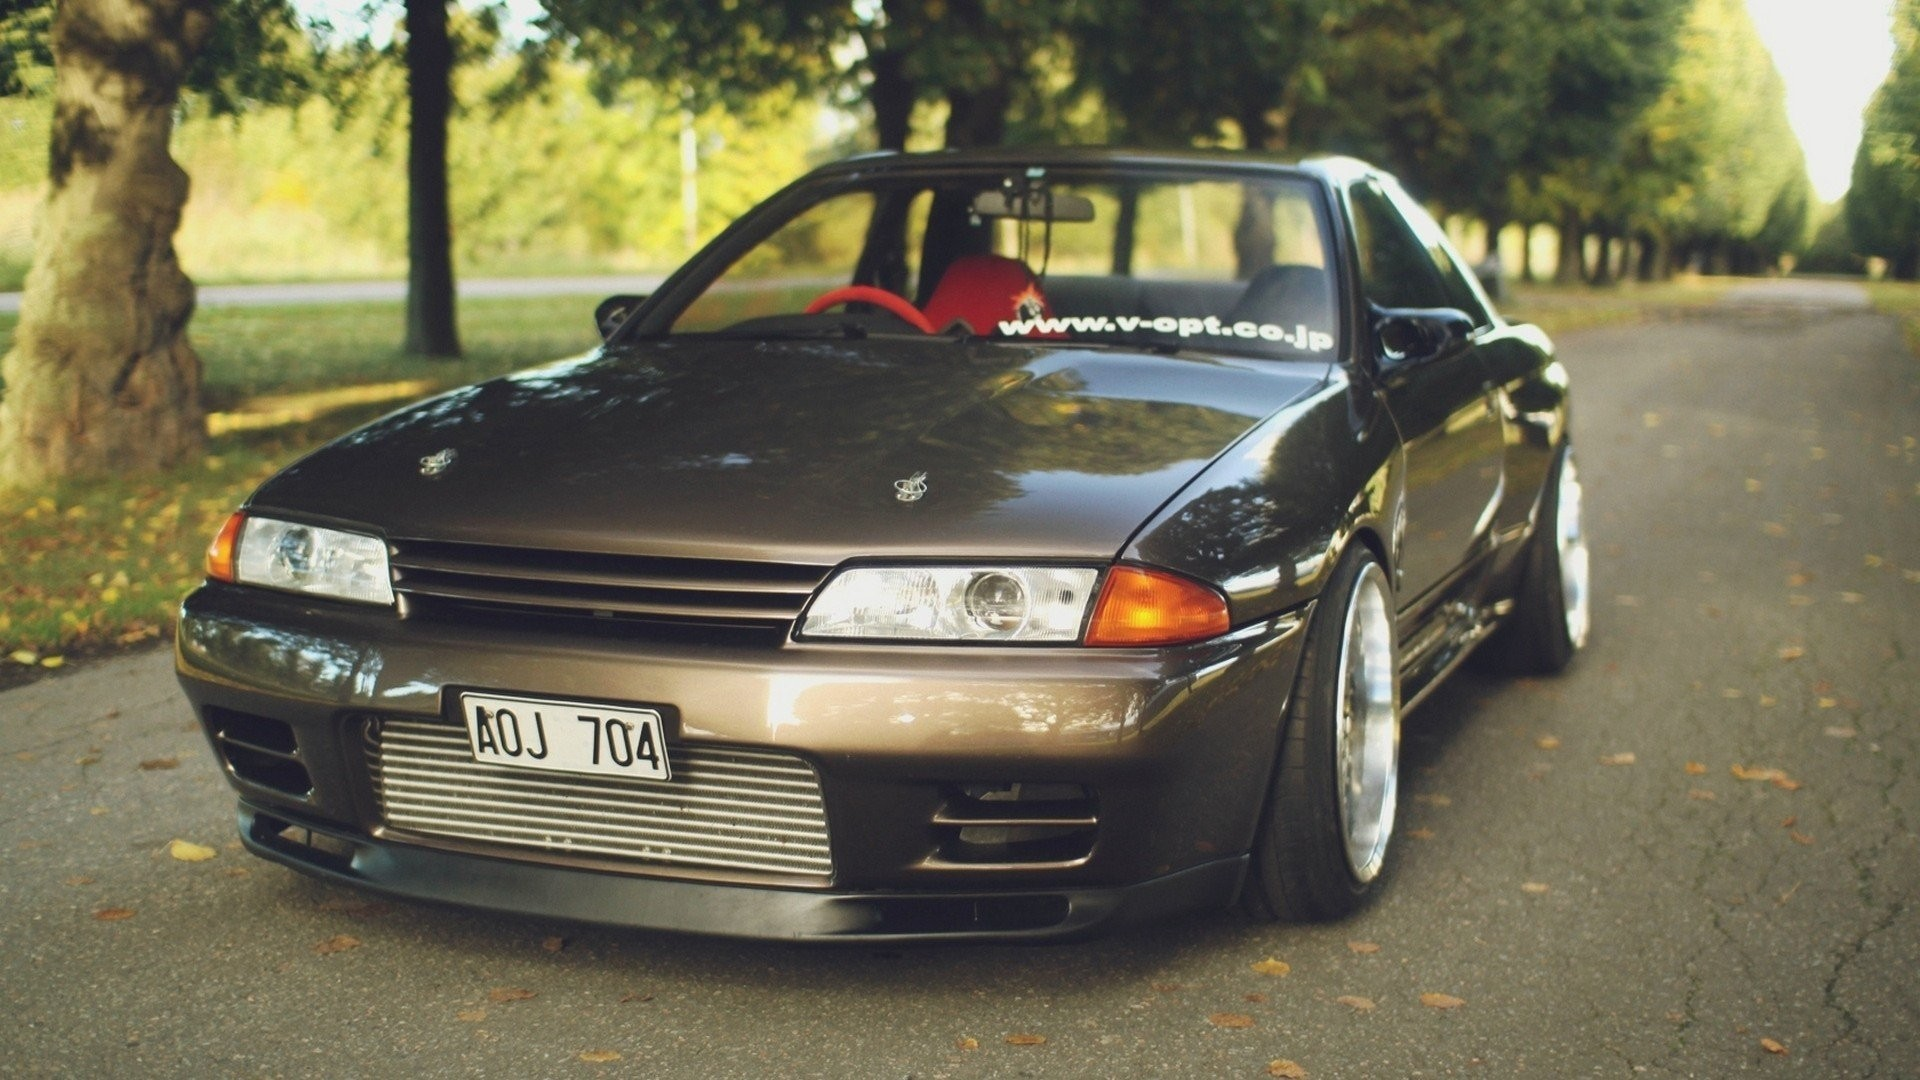 1920x1080 Cars Roads Tuning Tuned Nissan Skyline R32 GT R Stance JDM  Japanese Domestic Market